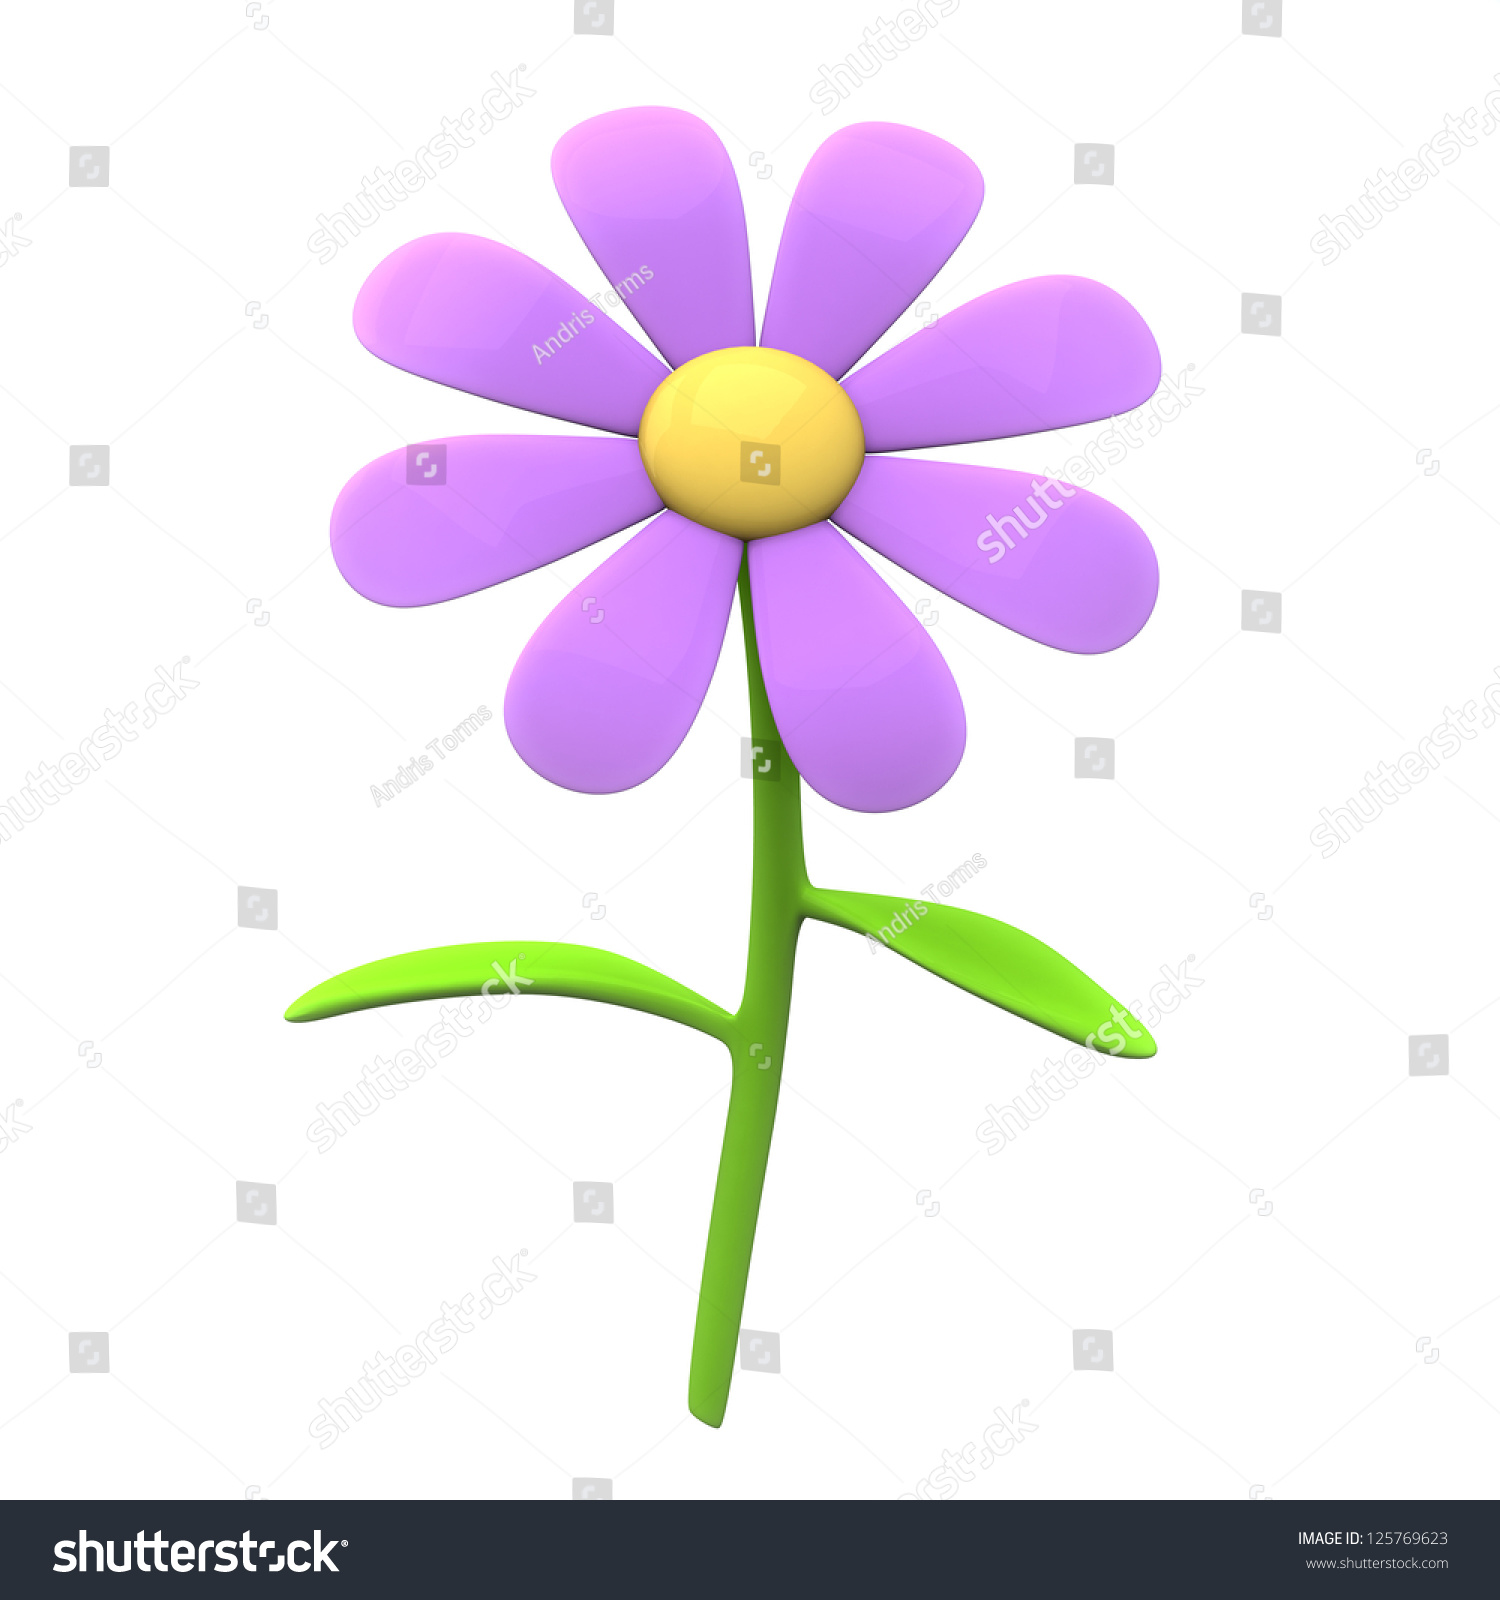 Pink flower icon 3 d image stock illustration 125769623 shutterstock pink flower icon 3d image mightylinksfo